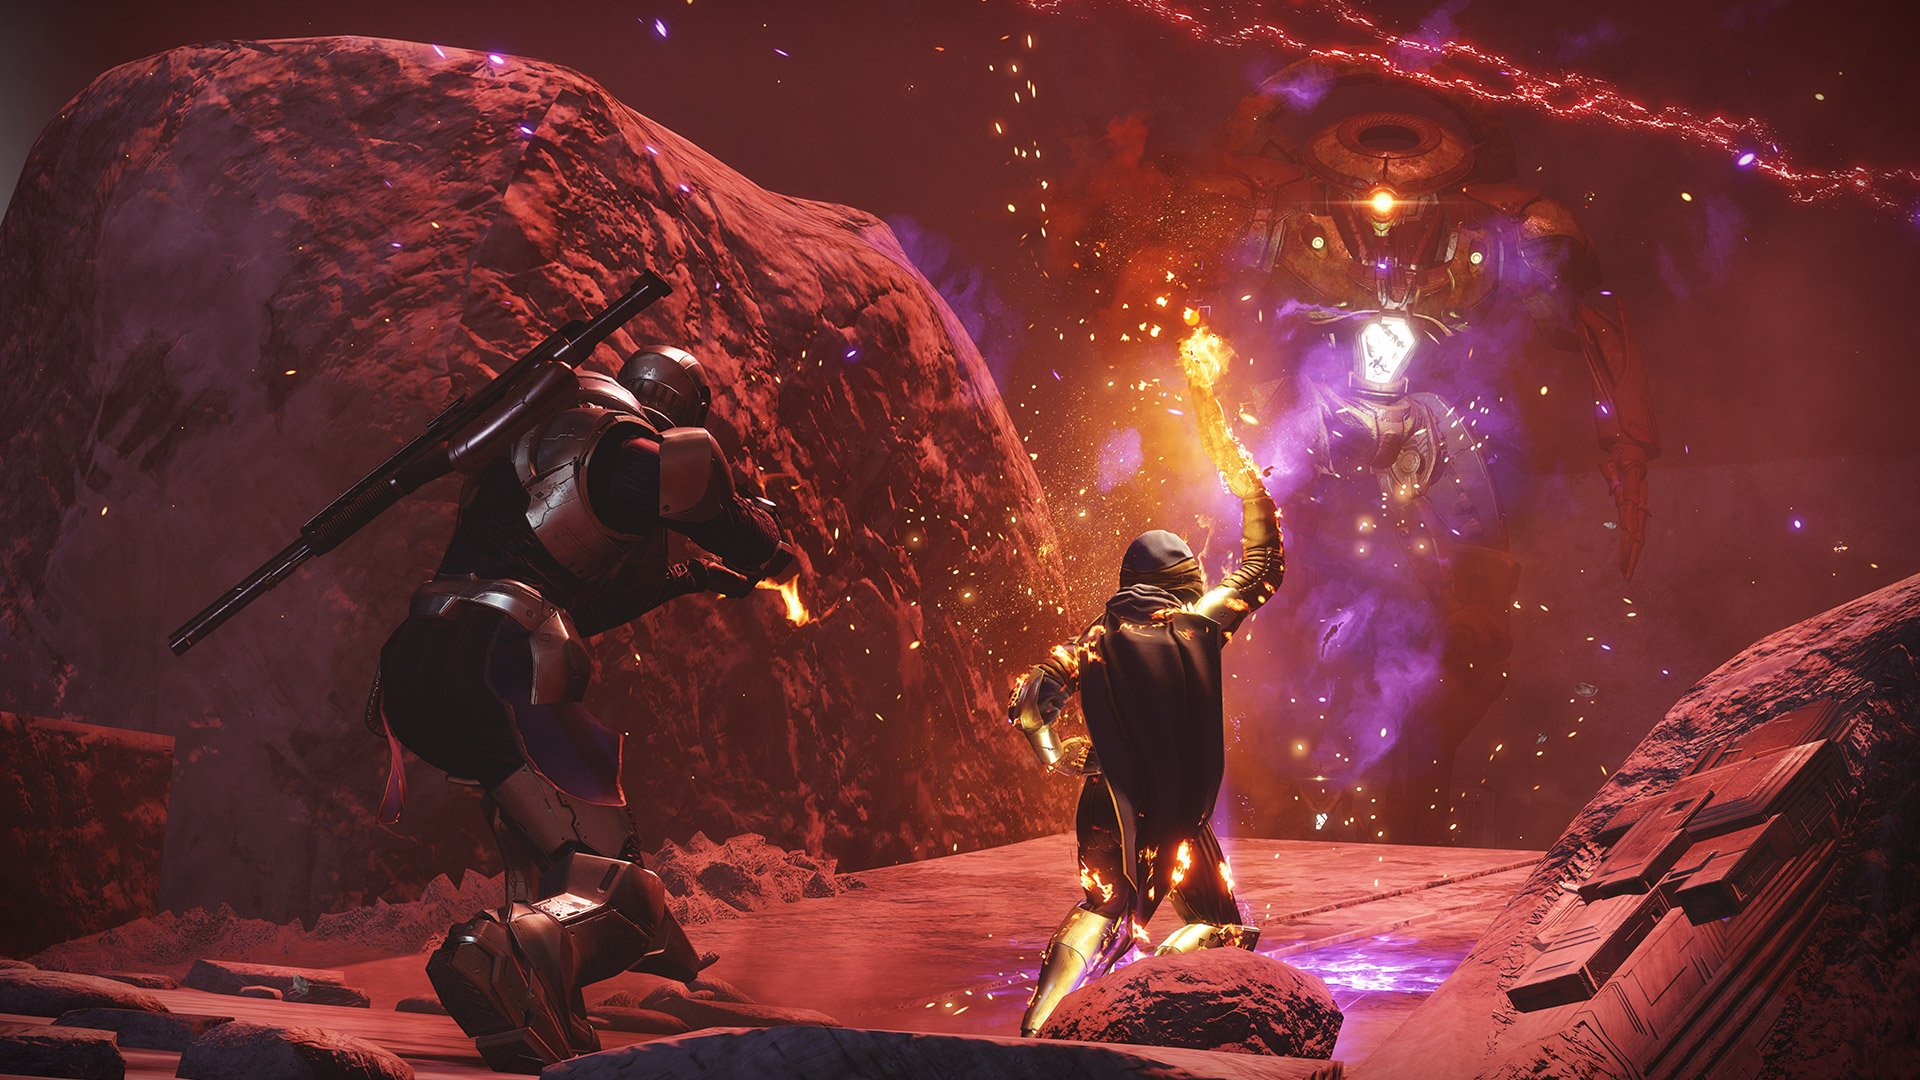 Get the season of dawn badge in destiny 2 - two guardians explore a cave